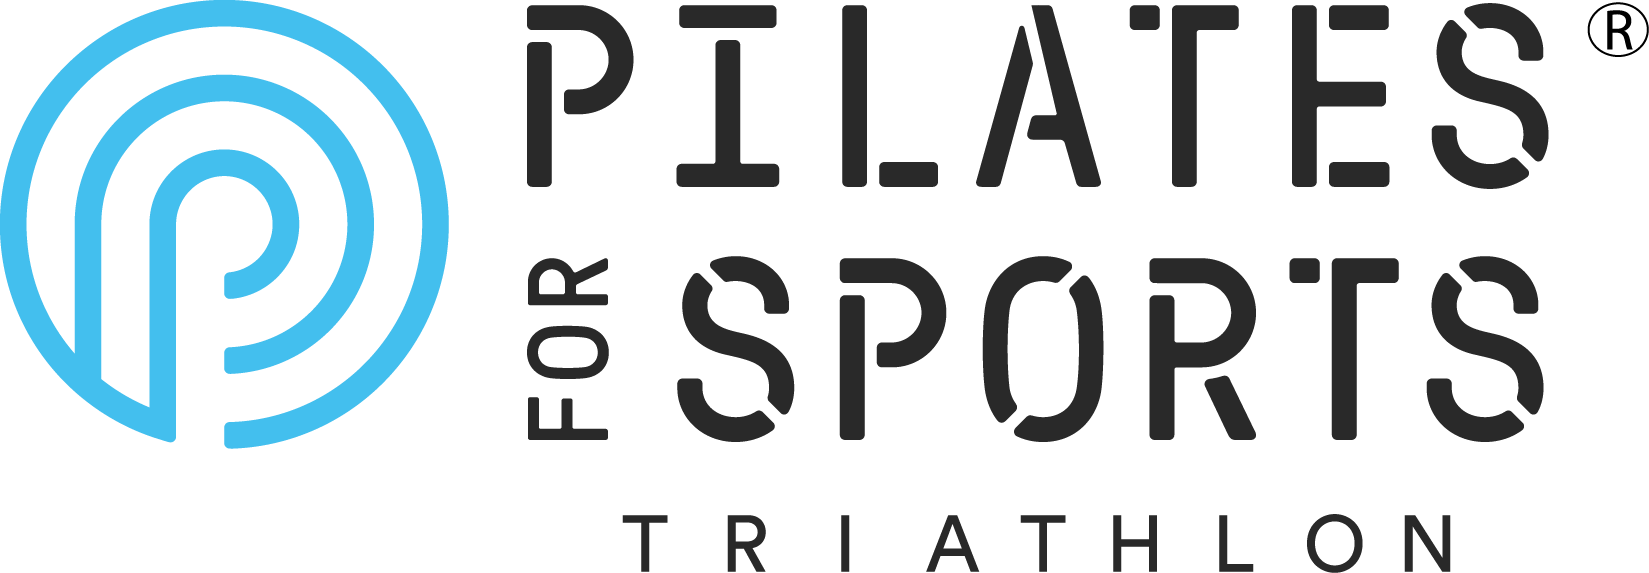 Pilates for Sports FREE 28 Day Challenge for Triathletes